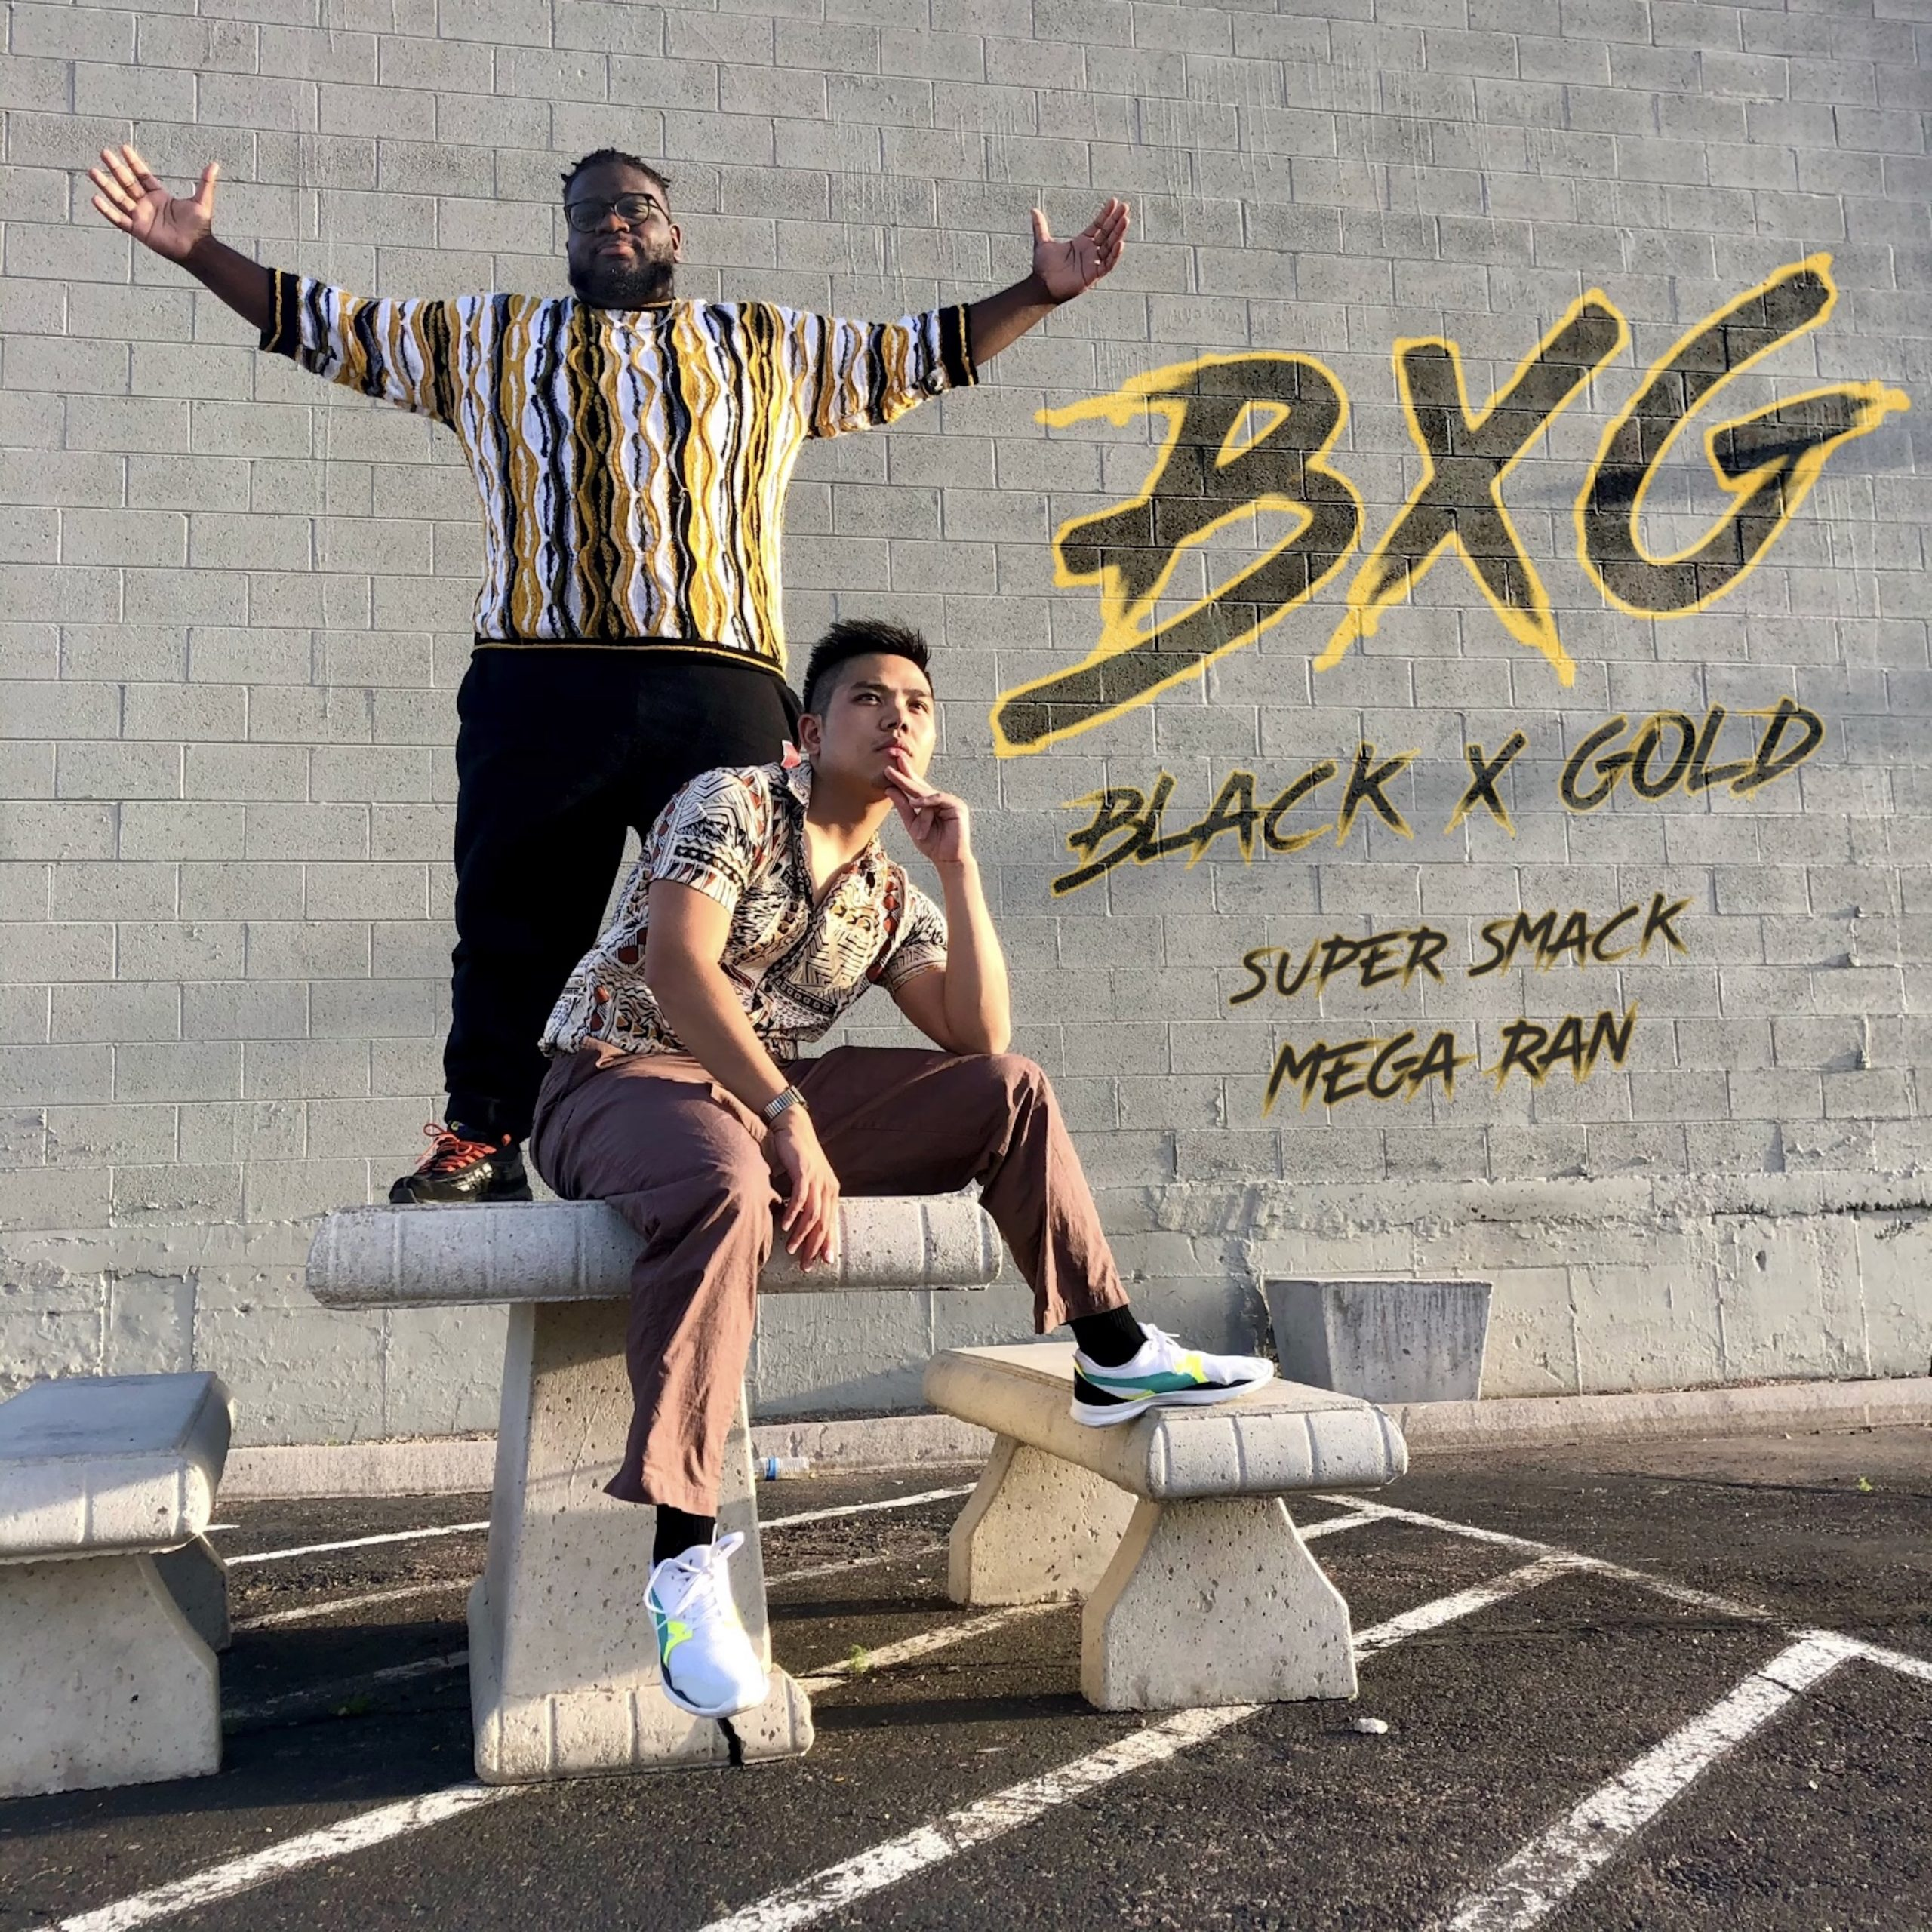 """Read more about the article American Hip-Hop Artist Super Smack Talks About His Latest Single """"Black X Gold"""" With Mega Ran"""